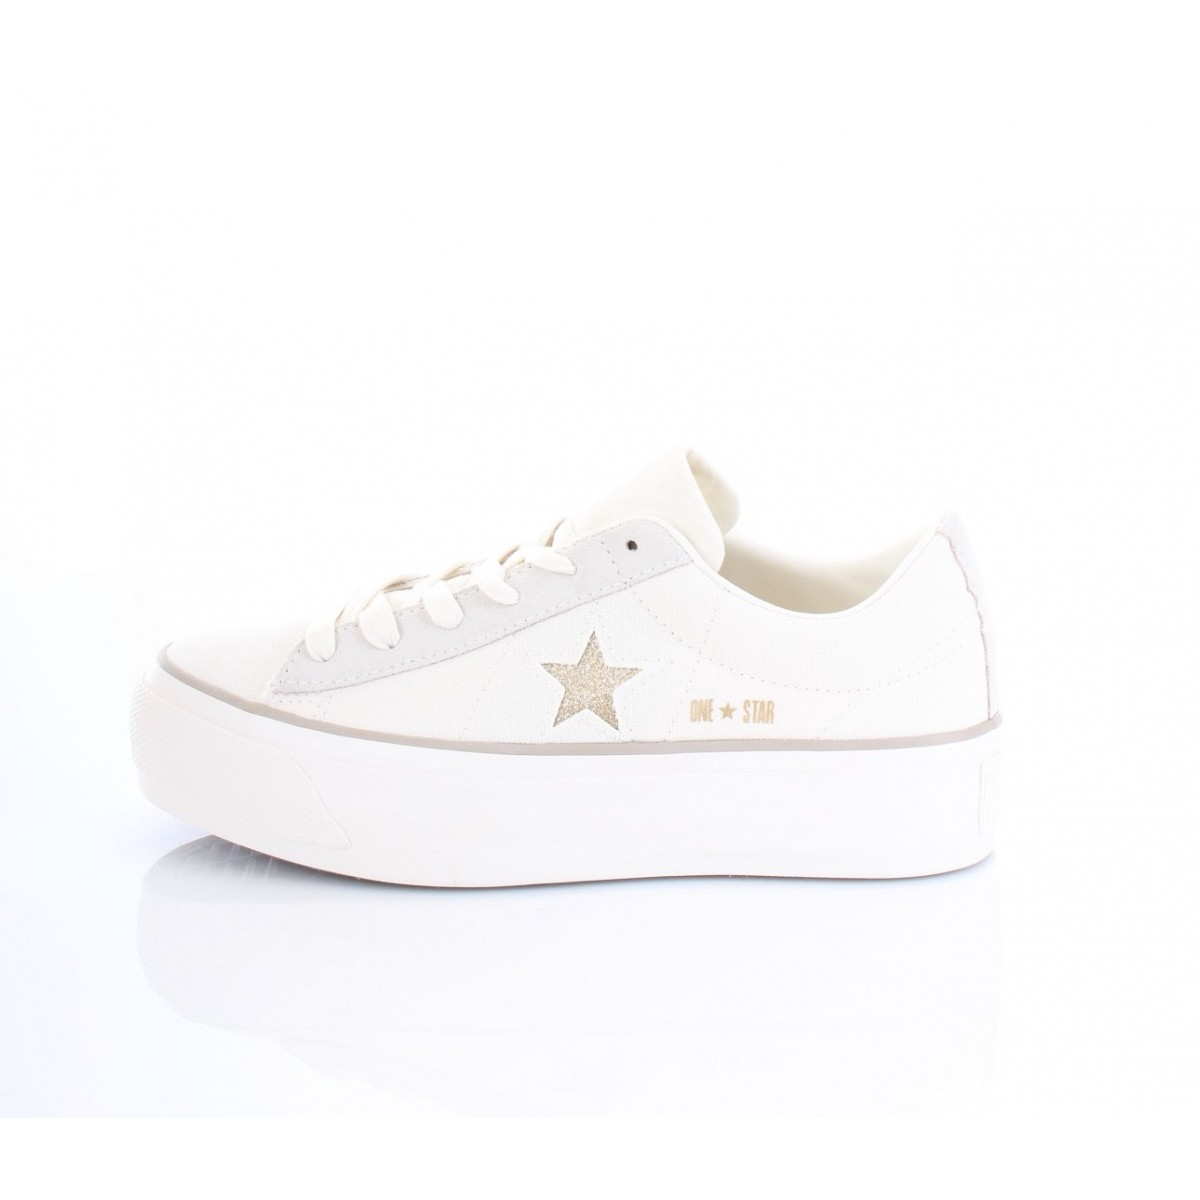 43a9d79237a1 Converse All Star Sneakers Donna Platform Ox 560985C Bianche